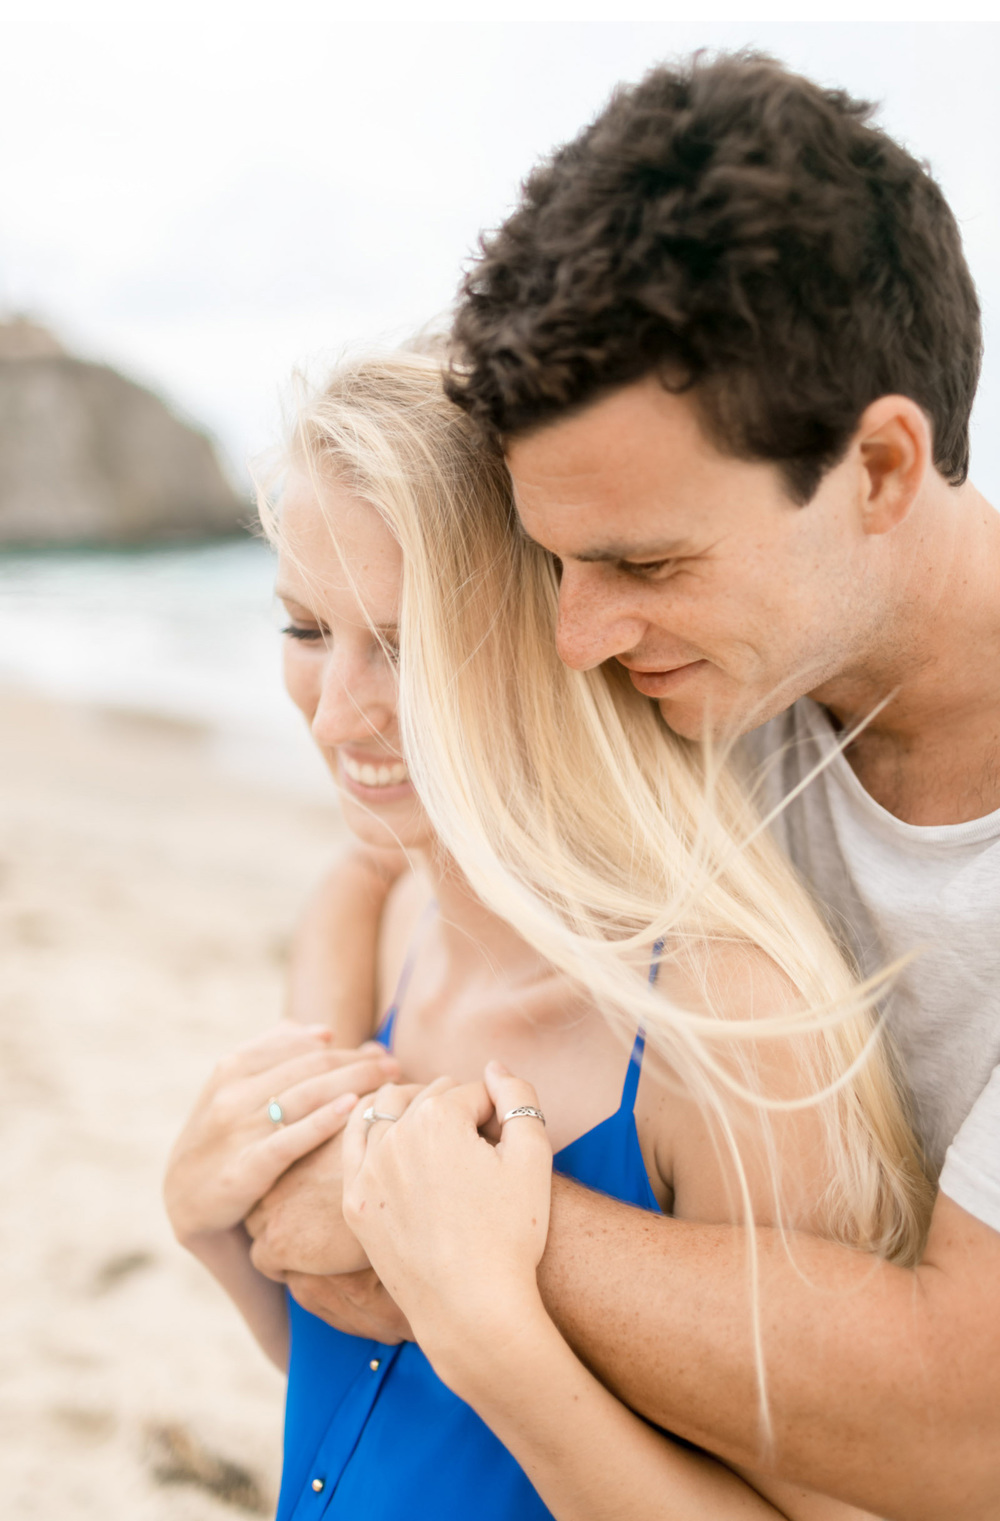 Laguna-Beach-Engagement-Natalie-Schutt-Photography_02.jpg